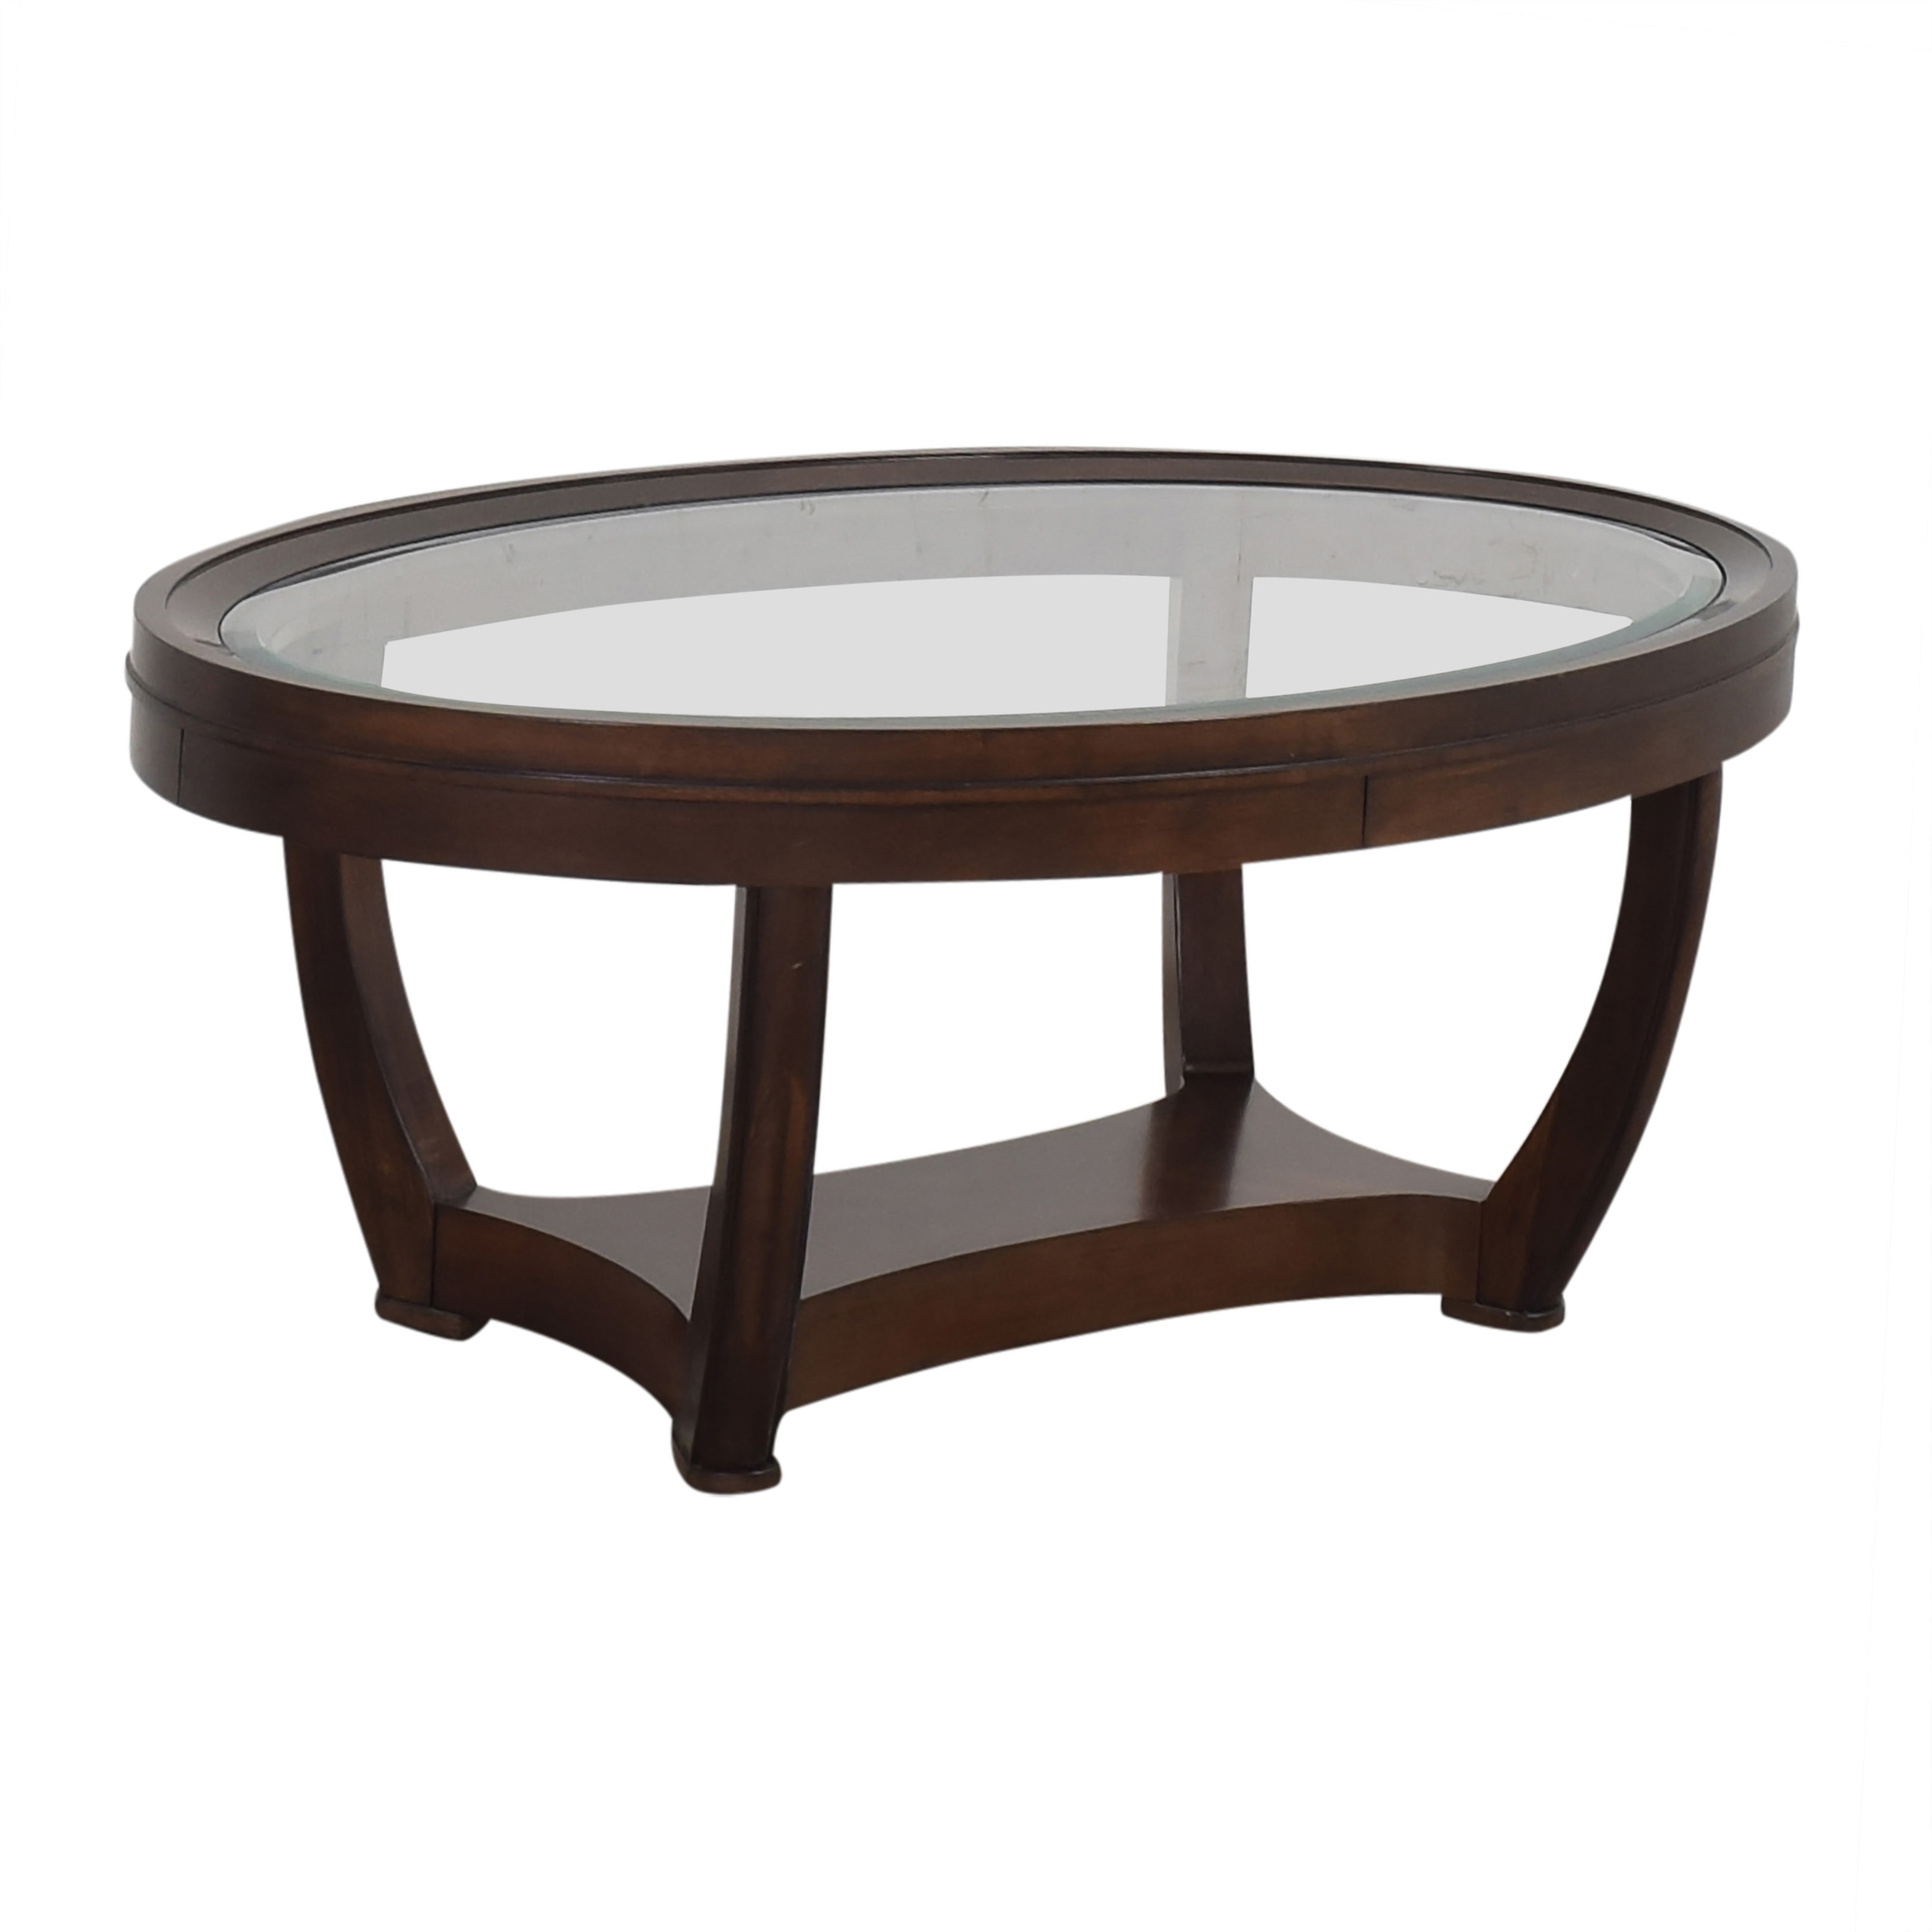 Oval Coffee Table used